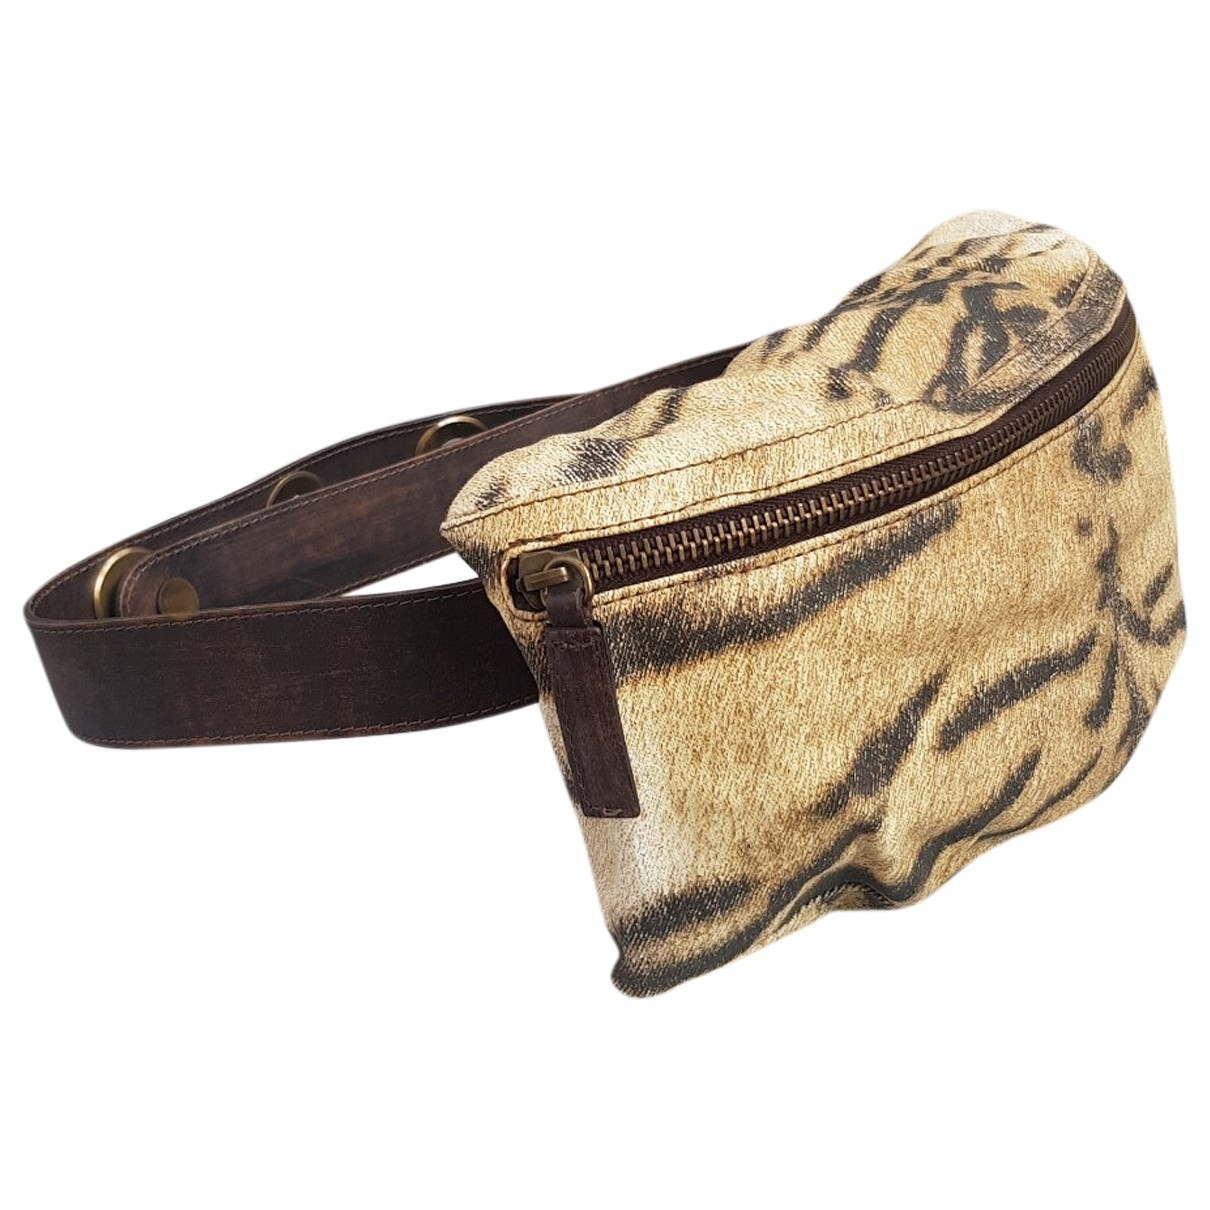 Roberto Cavalli \N Brown Cotton belt for Women M International